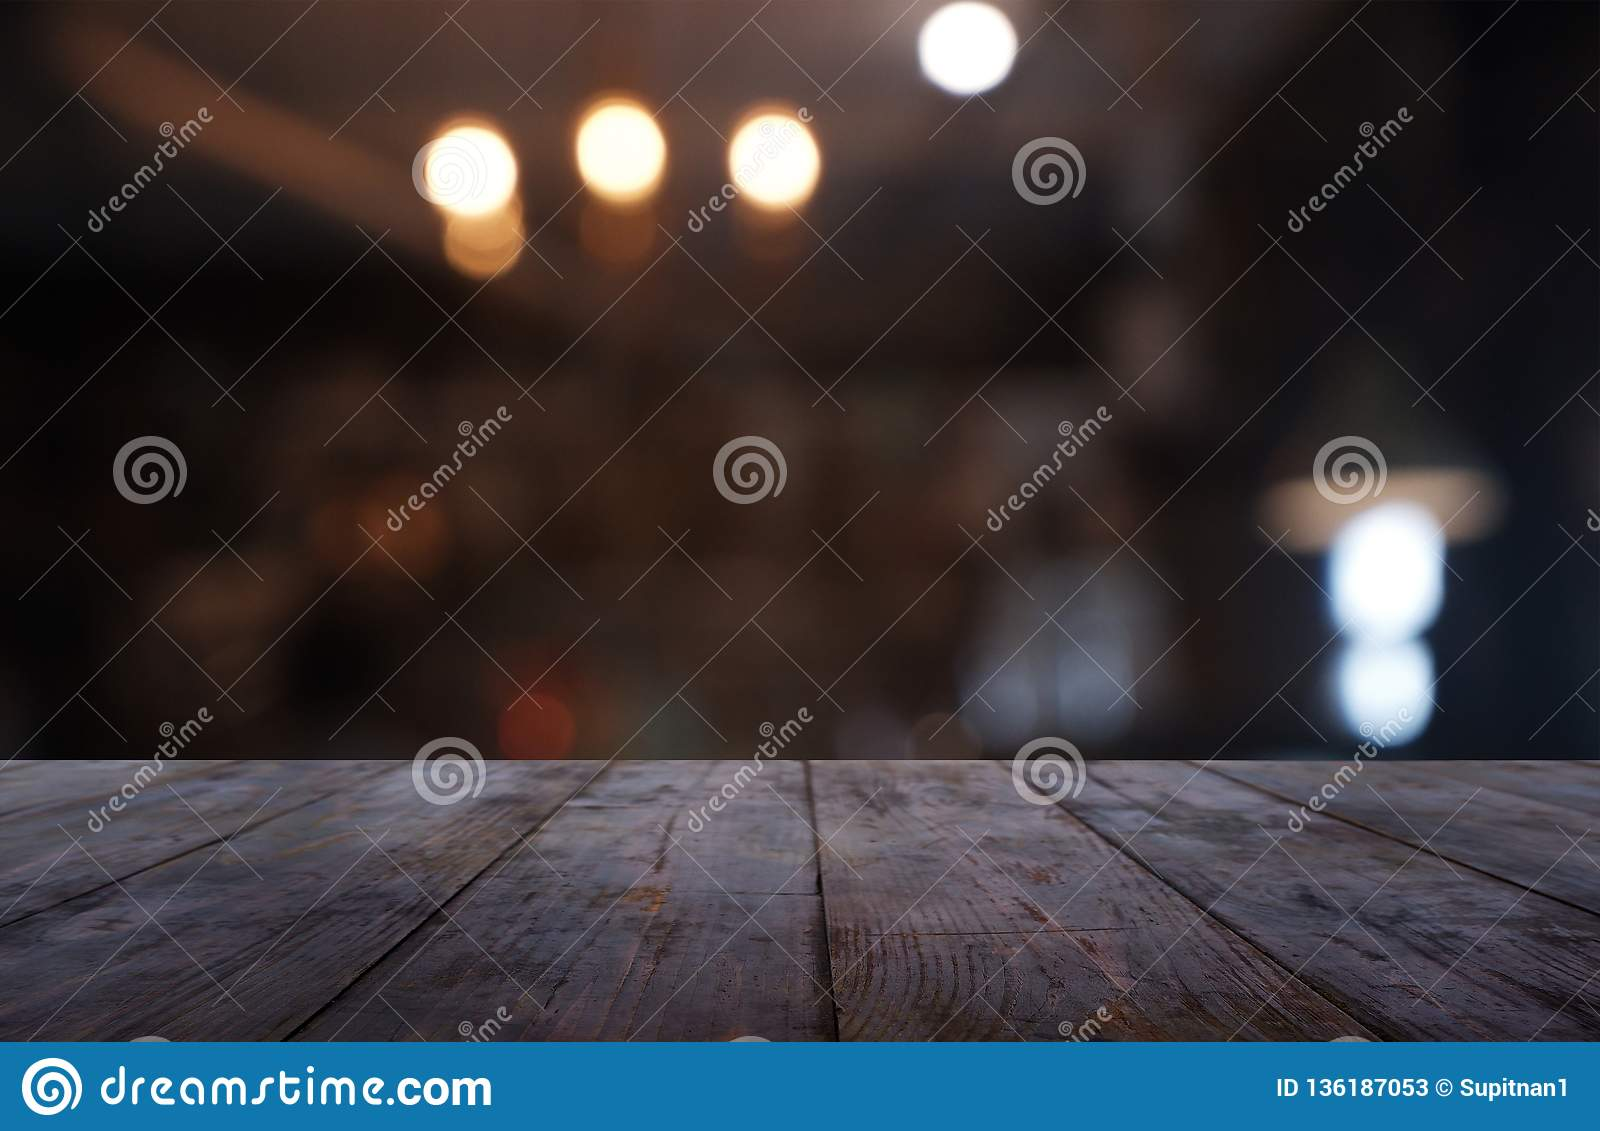 Empty dark wooden table in front of abstract blurred background of cafe and coffee shop interior. can be used for display or